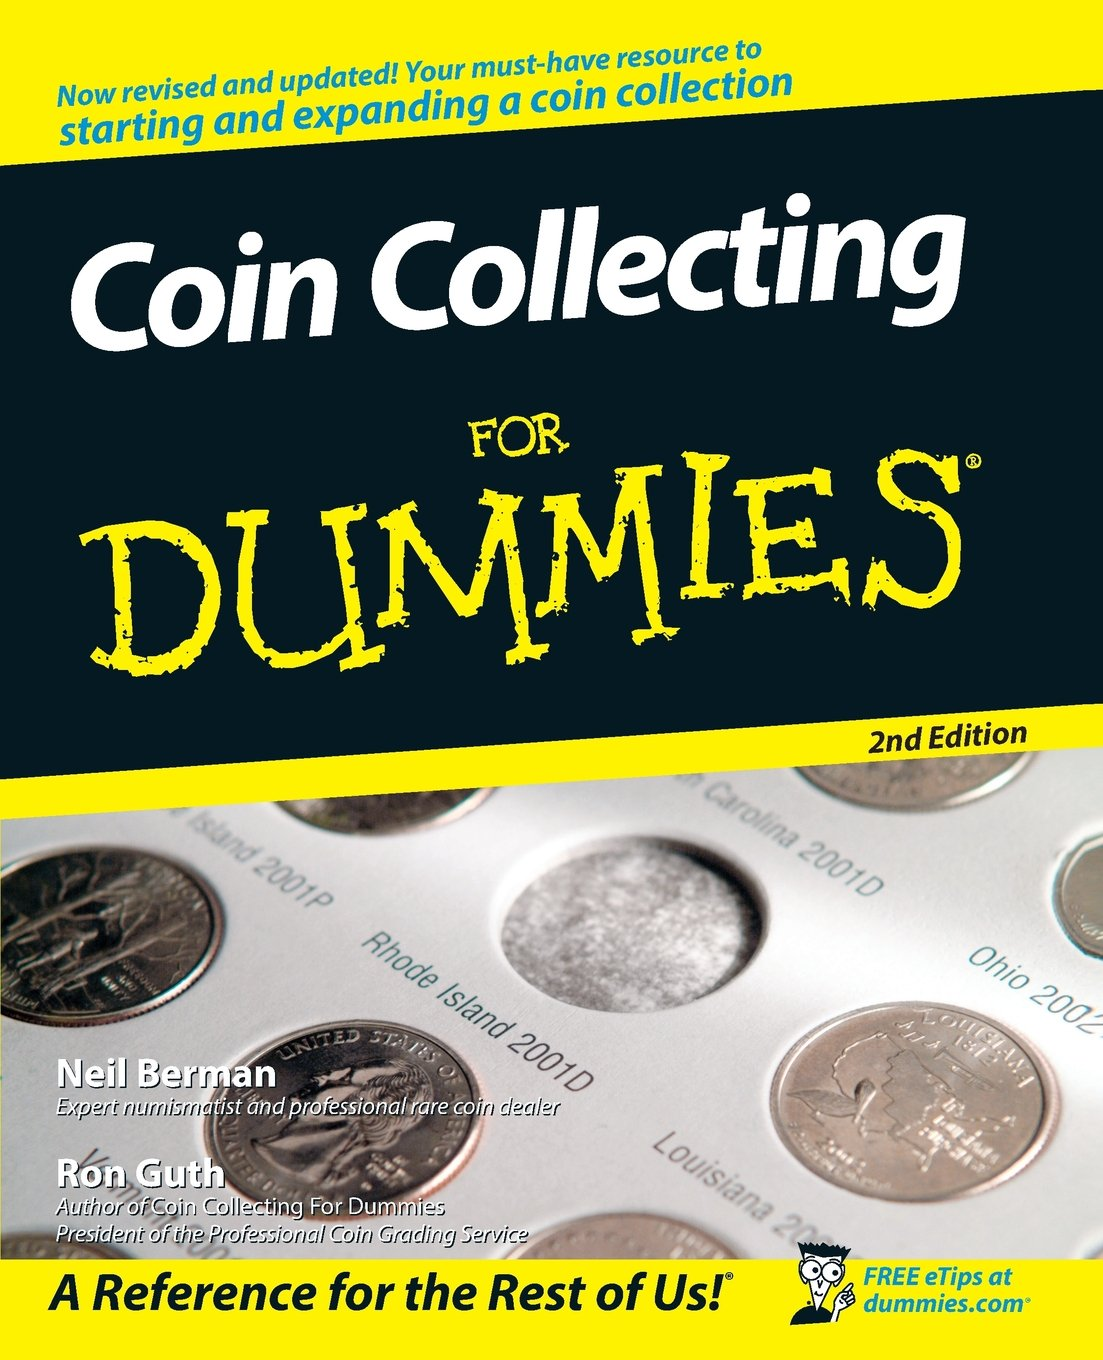 Coin Collecting For Dummies Neil S. Berman Ron Guth 9780470222751 Amazon.com Books  sc 1 st  Amazon.com & Coin Collecting For Dummies: Neil S. Berman Ron Guth ... Aboutintivar.Com